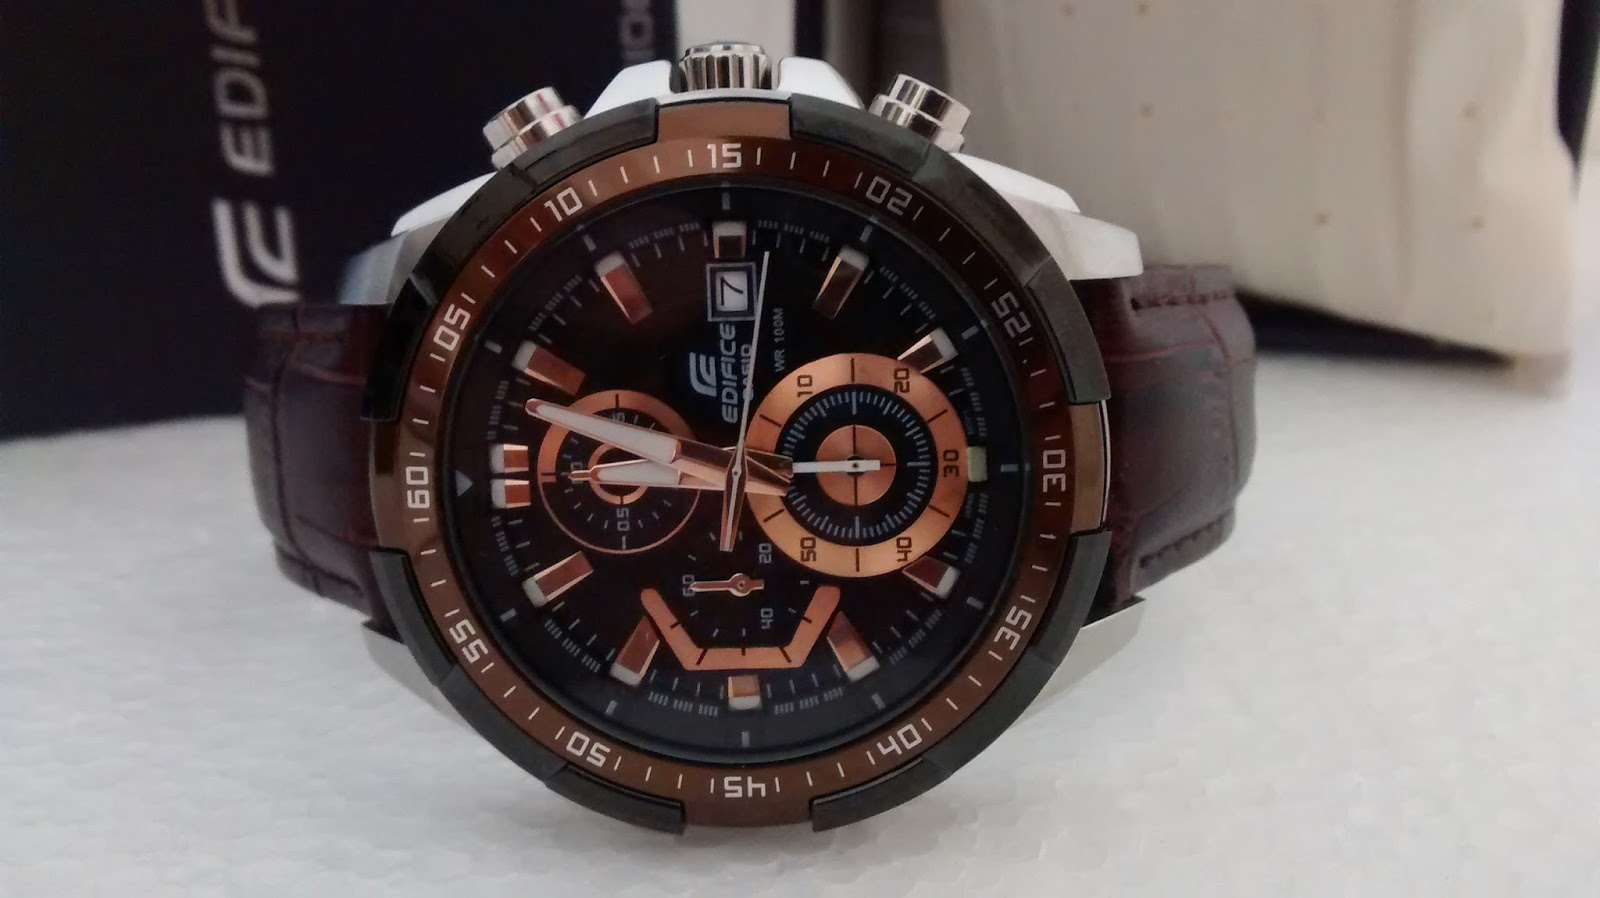 063cf56a2366da Rs2150 Only Leather Edifice EFR 539 Brown Chrono | 70% Discount ...